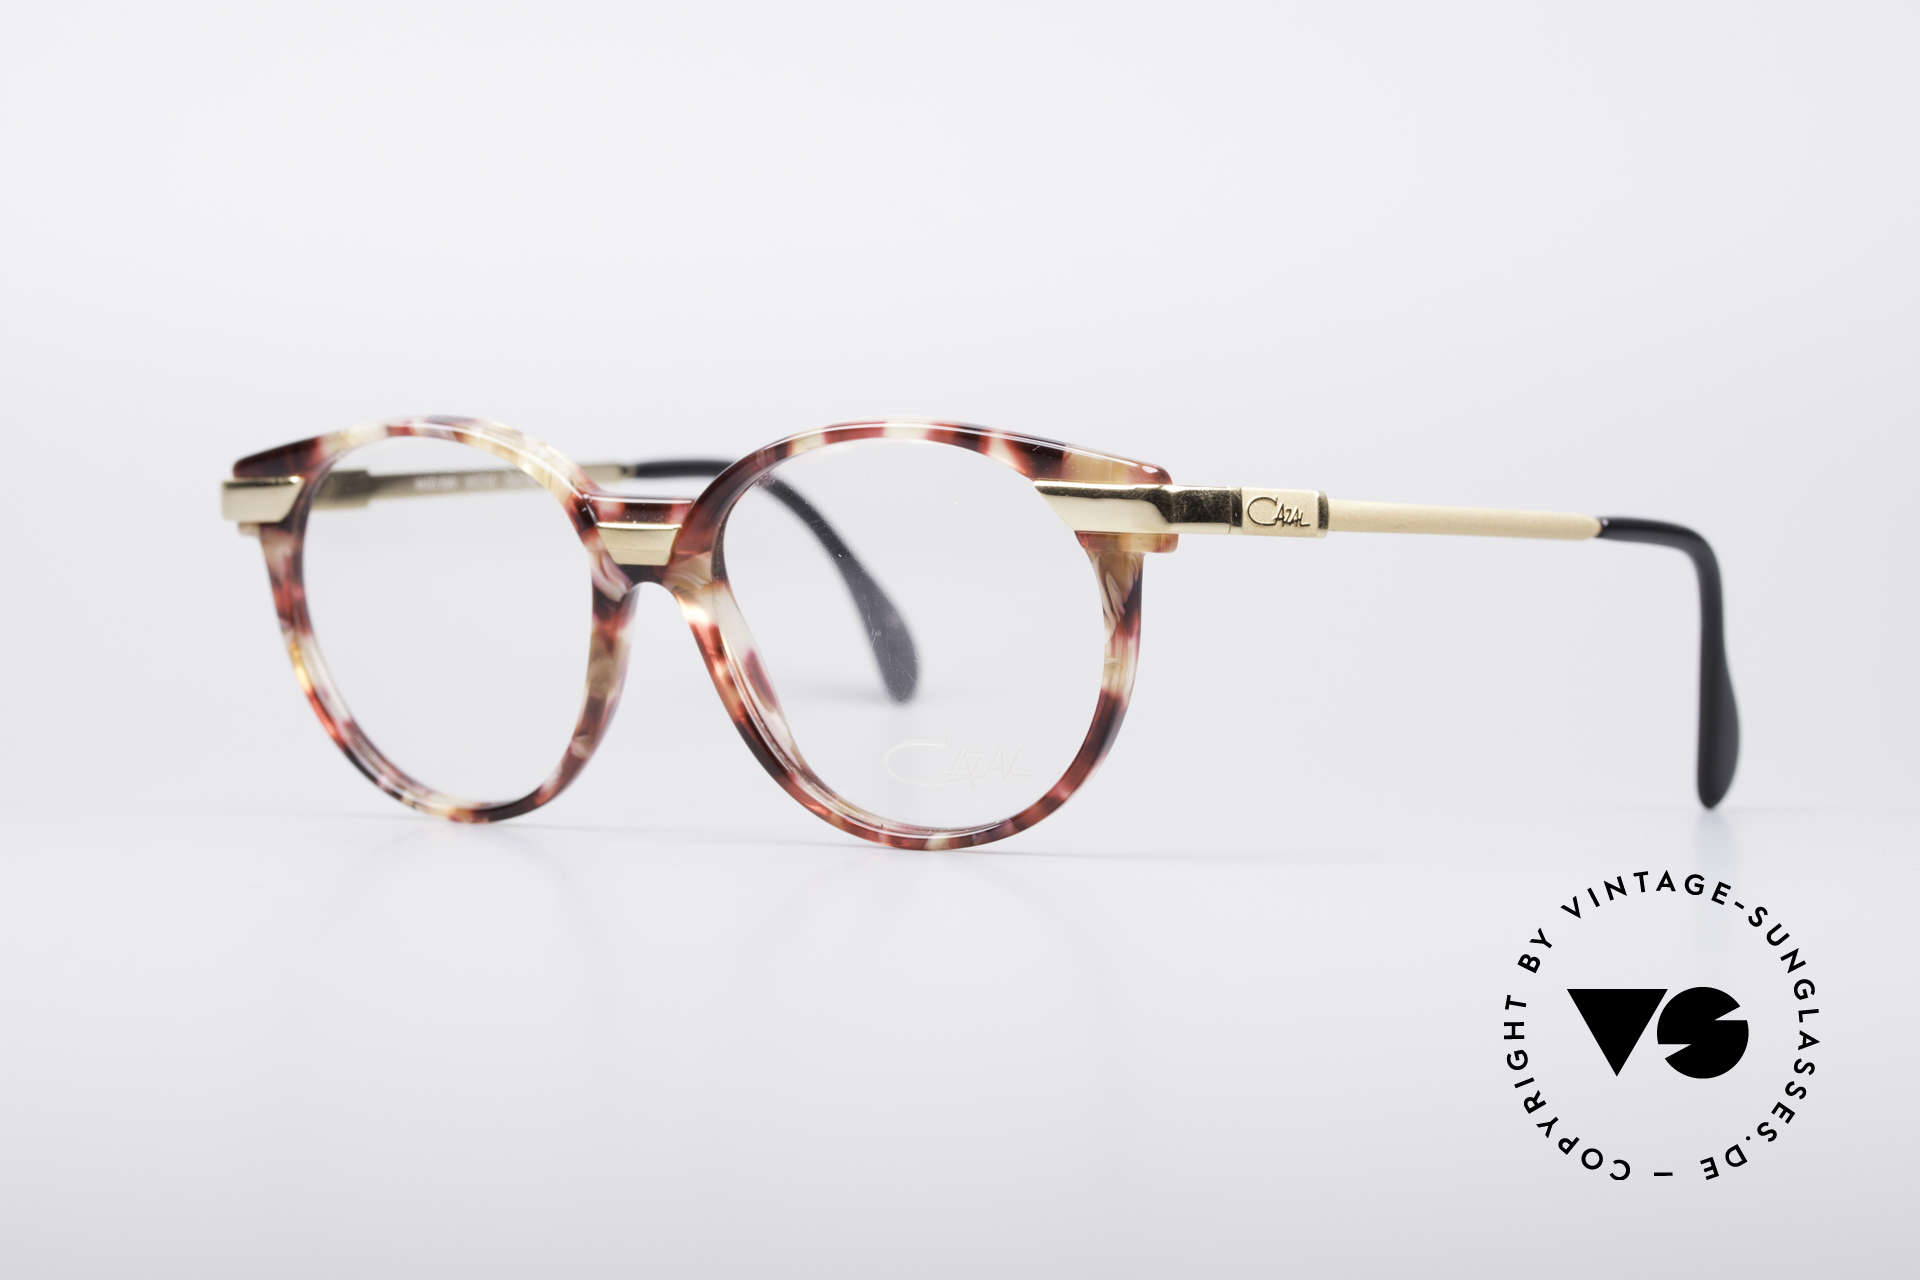 Cazal 338 Round 90's Vintage Frame, creative & discreet frame-coloring; at the same time, Made for Men and Women